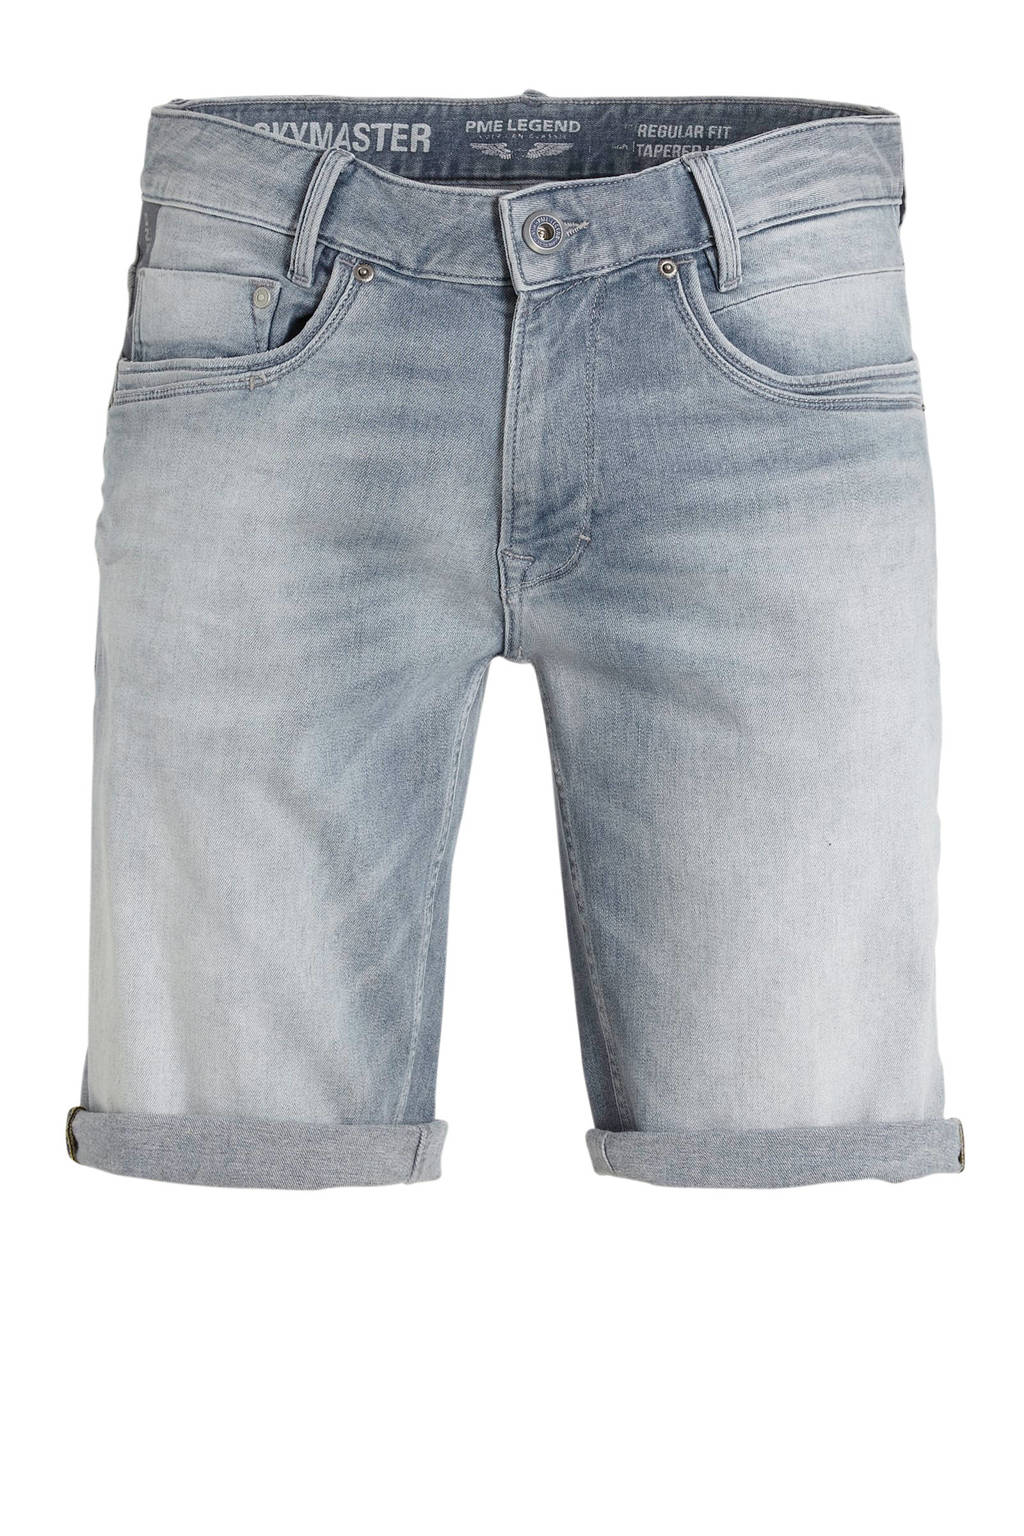 PME Legend regular fit jeans short grijs, Grijs